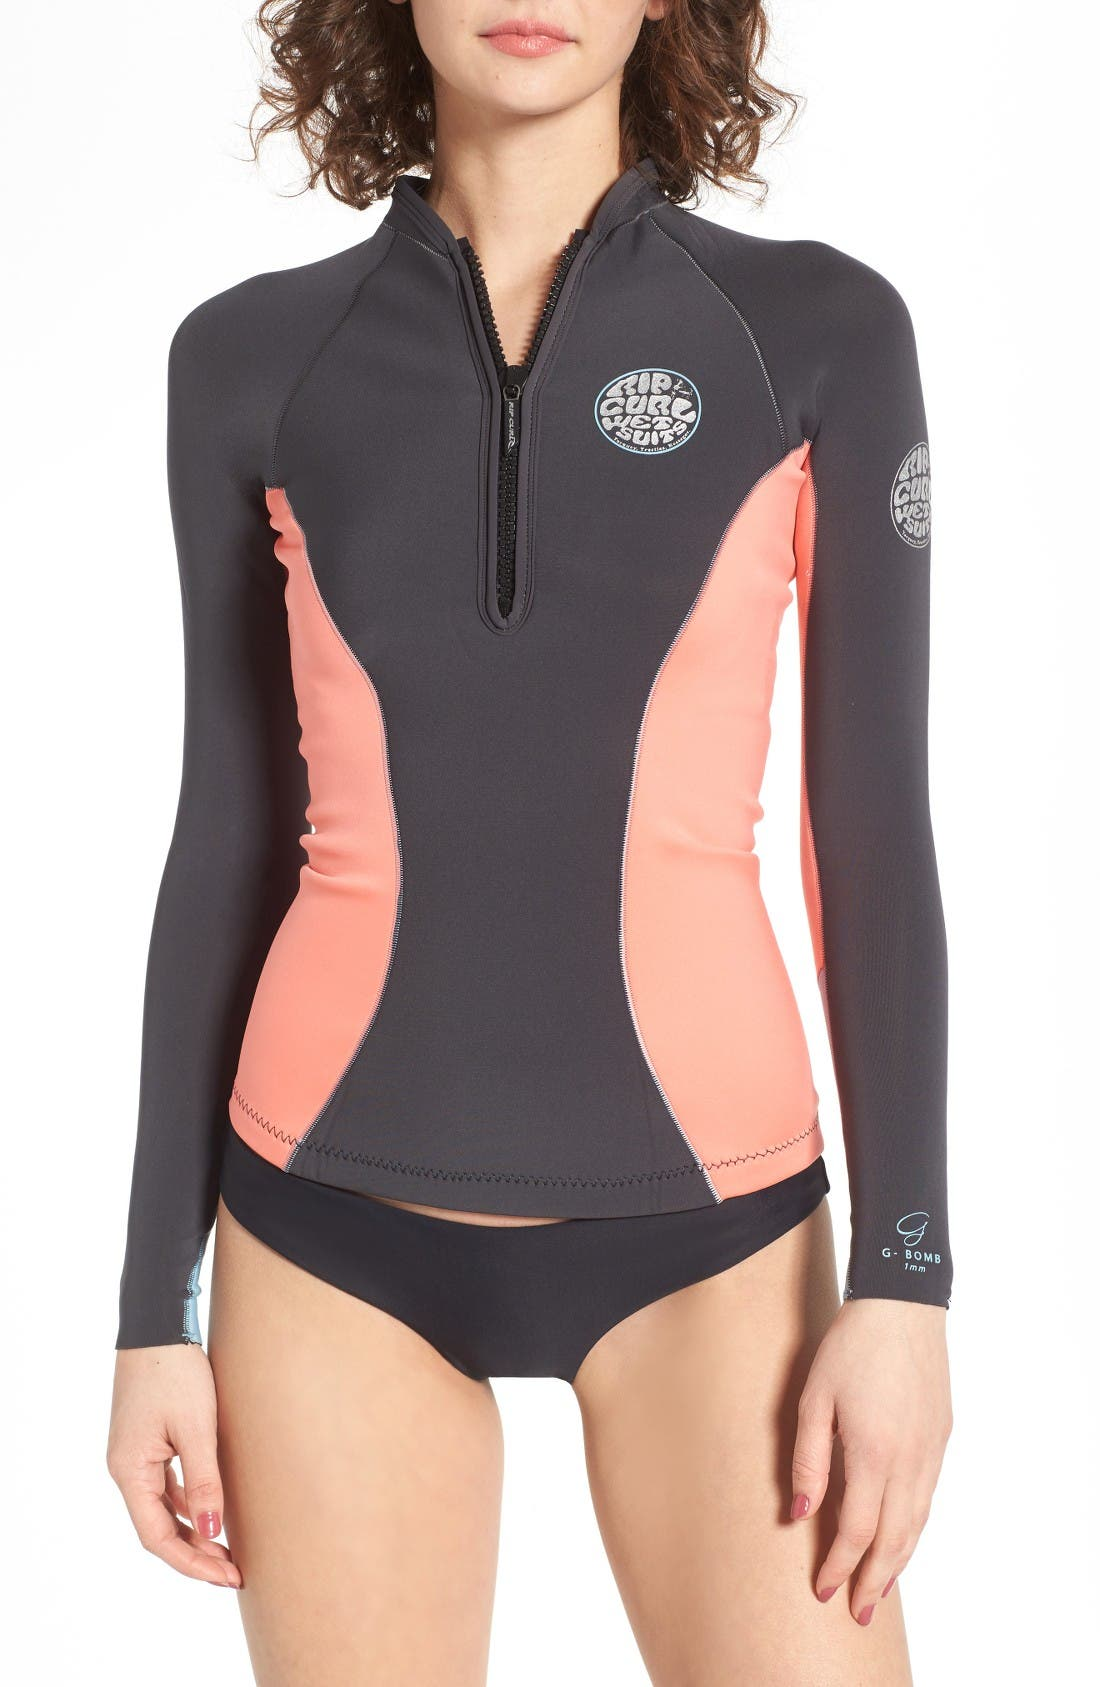 Main Image - Rip Curl G-Bomb Wetsuit Jacket